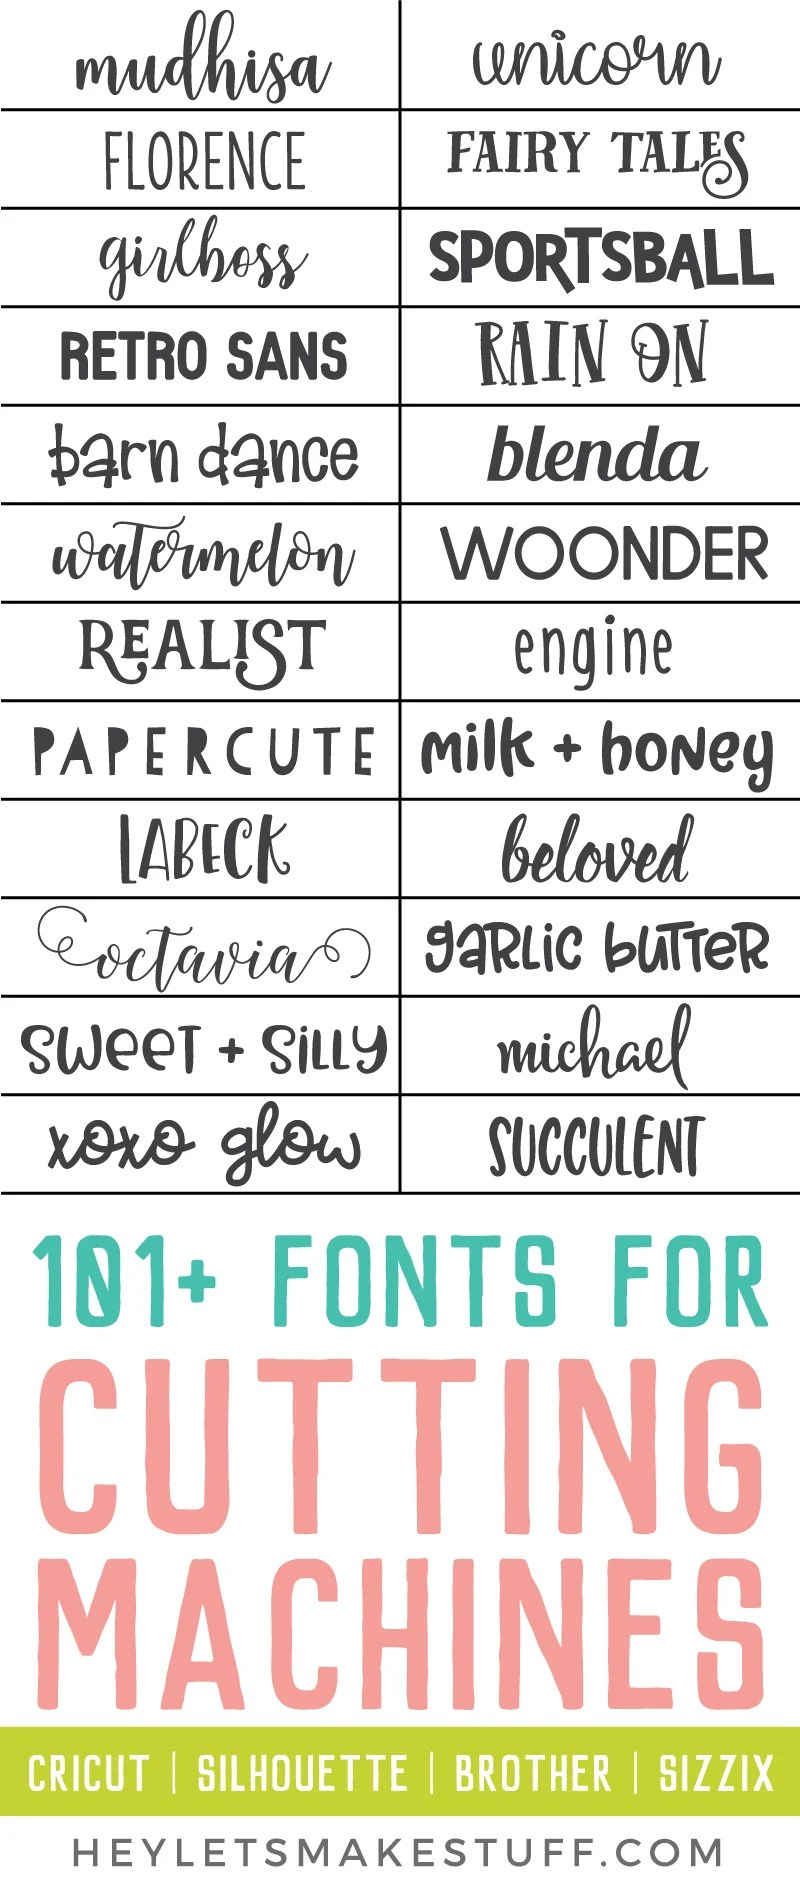 Looking for fonts that cut well on your Cricut, Silhouette, Brother, or Sizzix machine? Look no further! Here are more than 100 fonts for cutting machines that will cut cleanly and beautifully! via @heyletsmakestuf